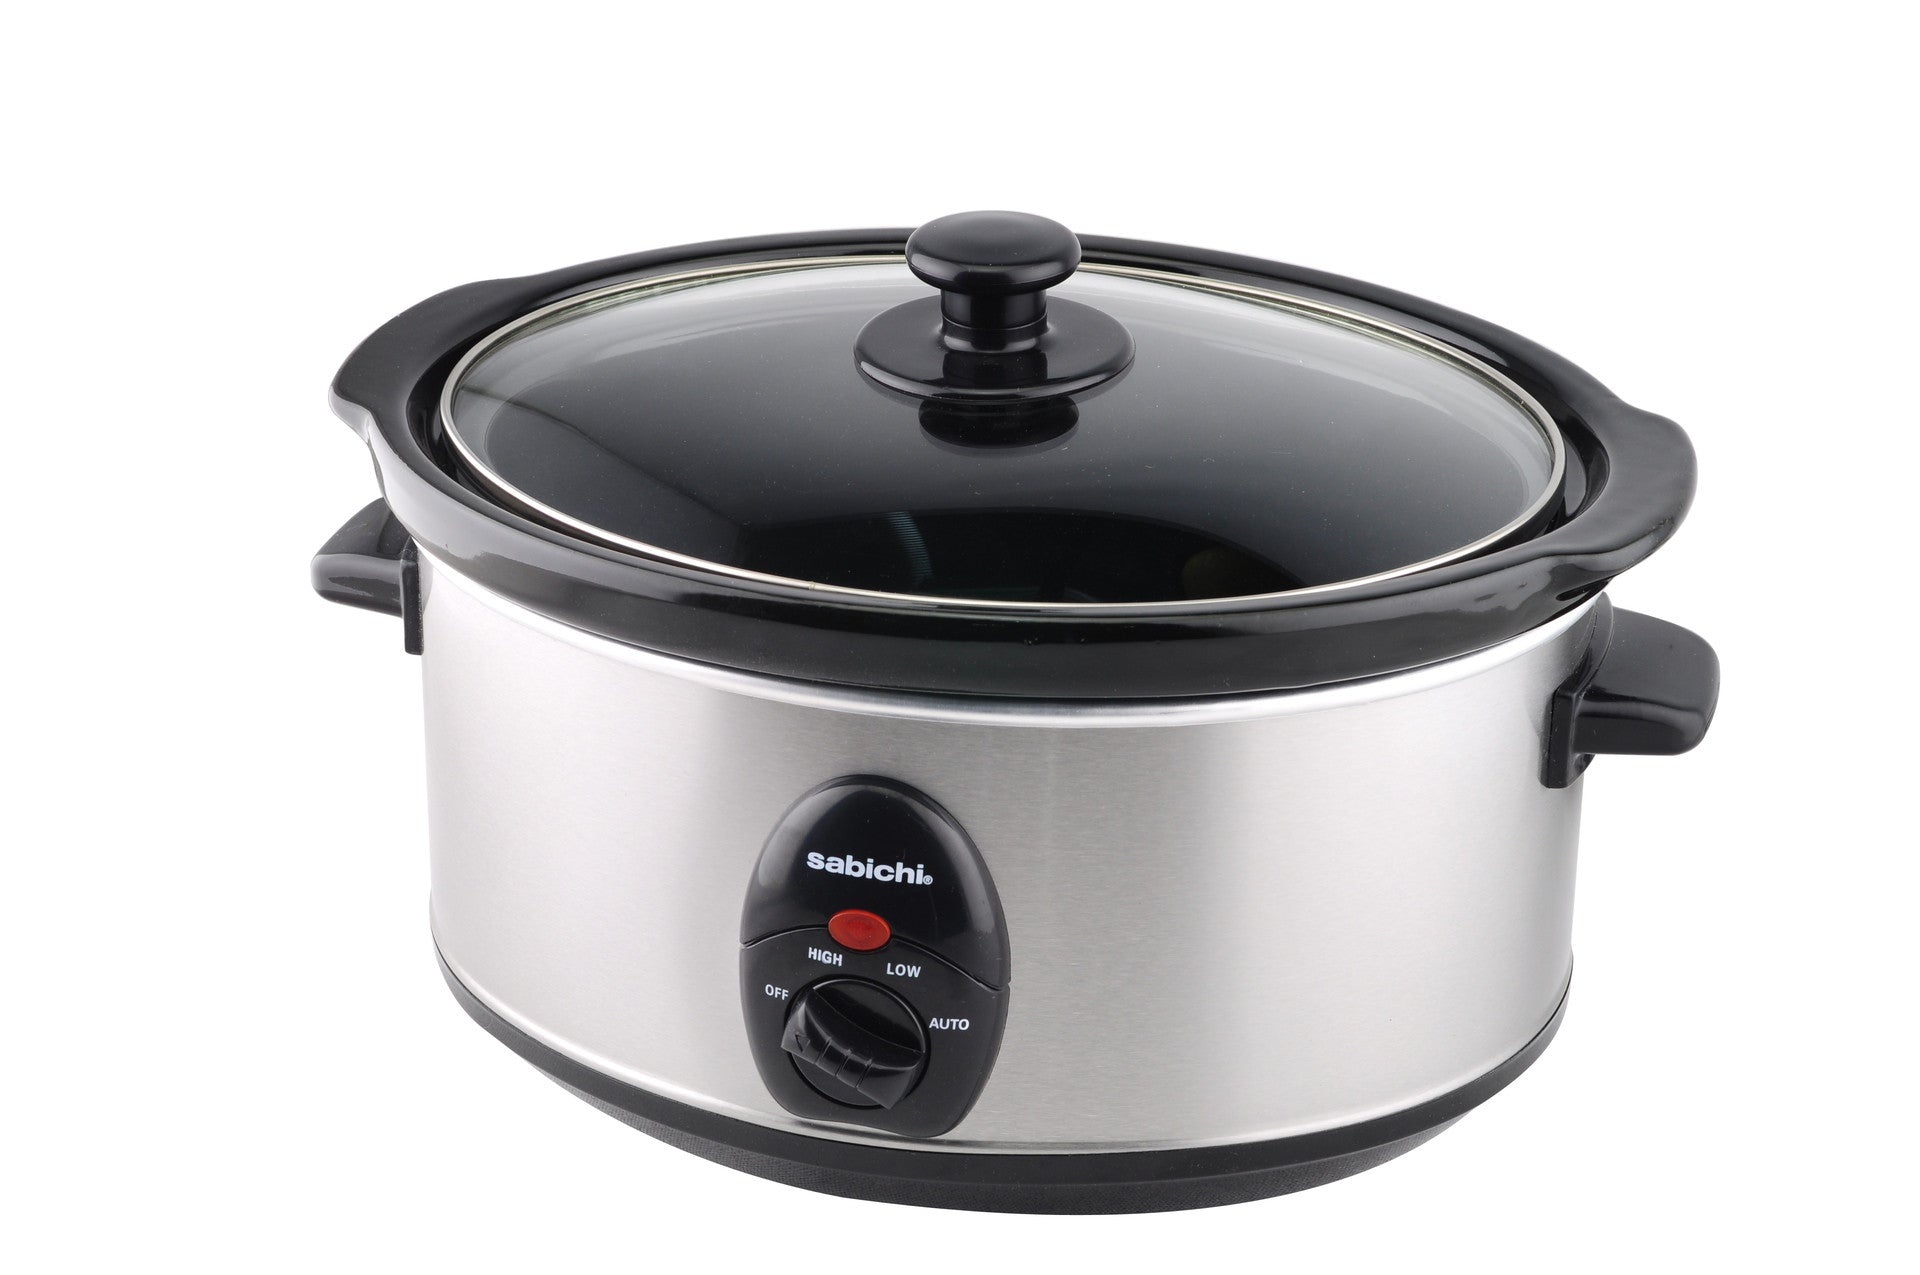 Sabichi 3ltr Slow Cooker- 168139 - Homely Nigeria